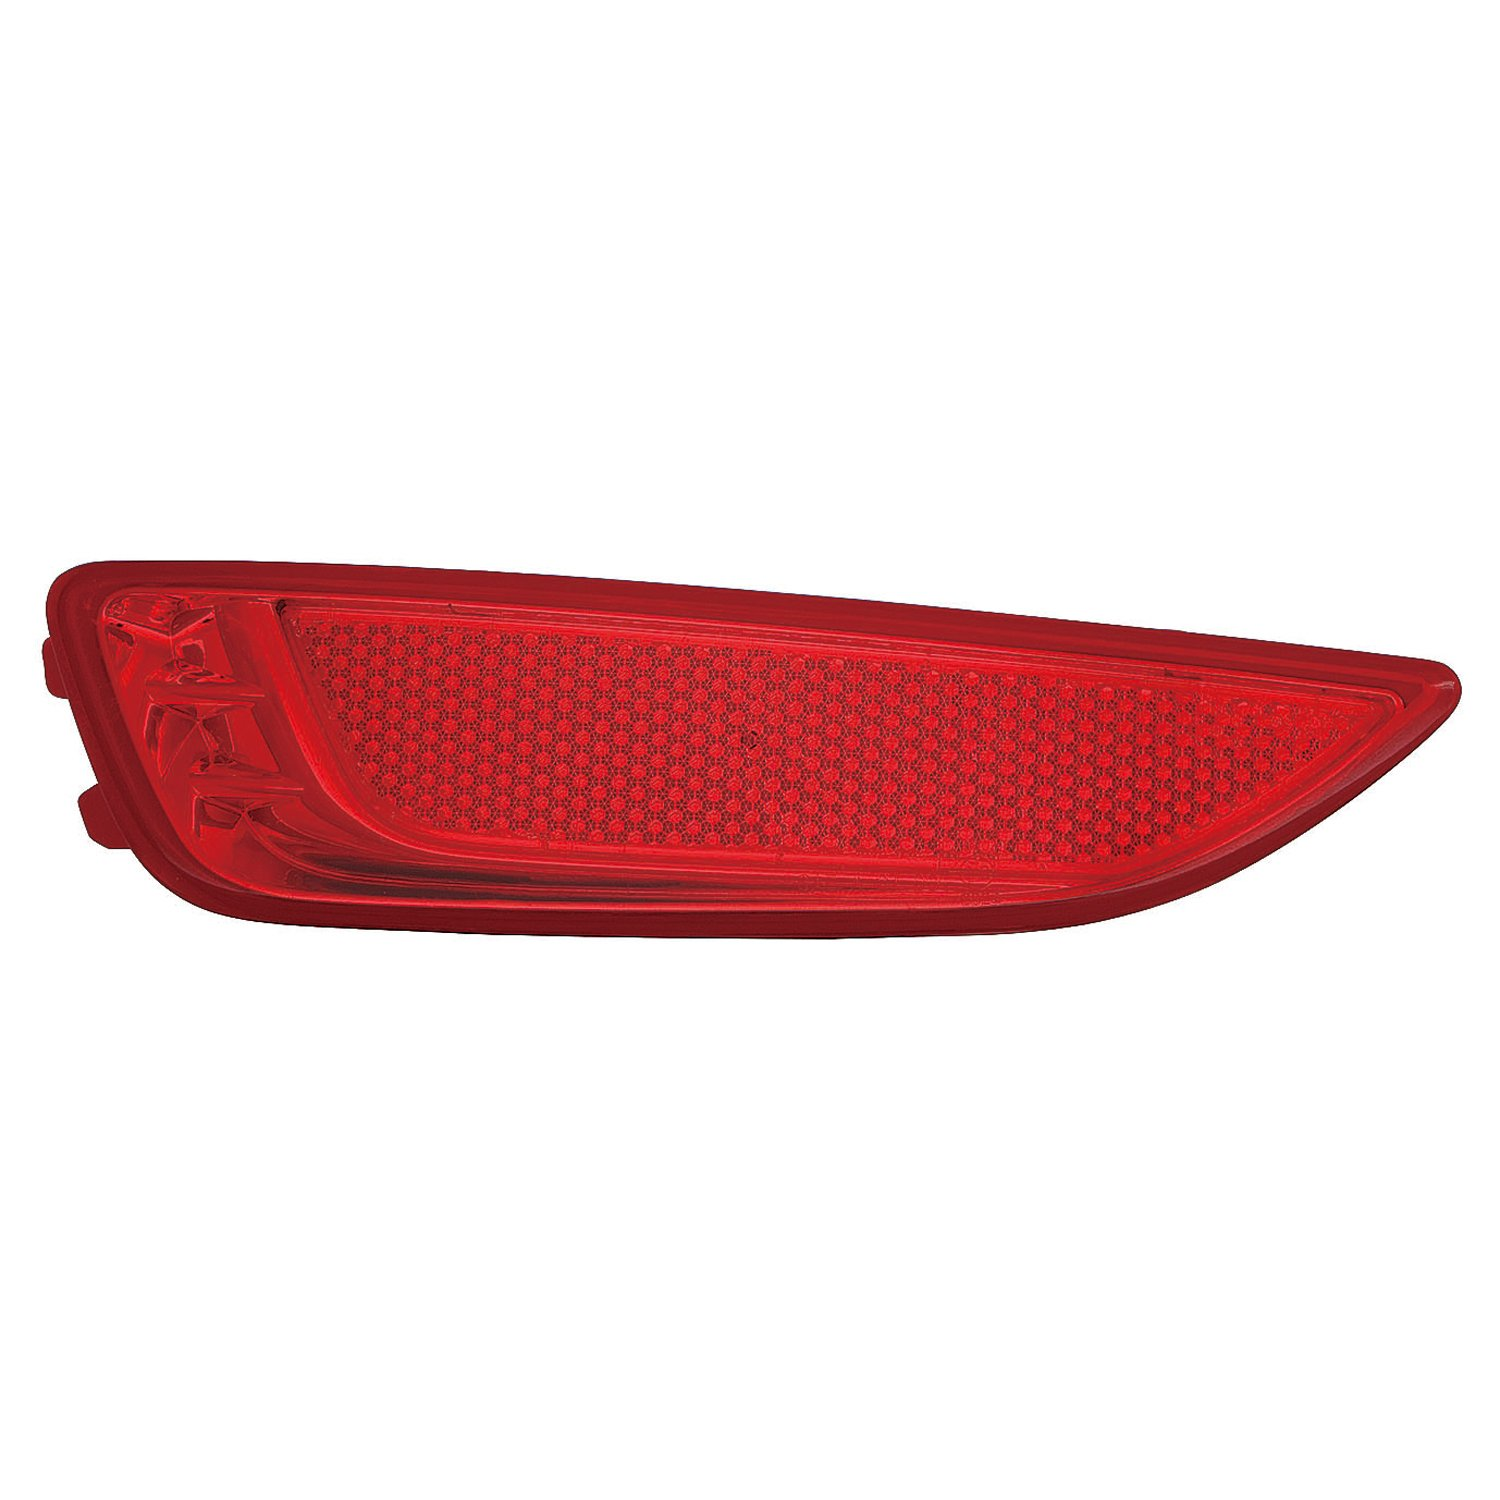 Partslink Number HY1184104 OE Replacement 2012-2016 HYUNDAI ACCENT/_HATCHBACK Bumper Reflector Multiple Manufacturers HY1184104N